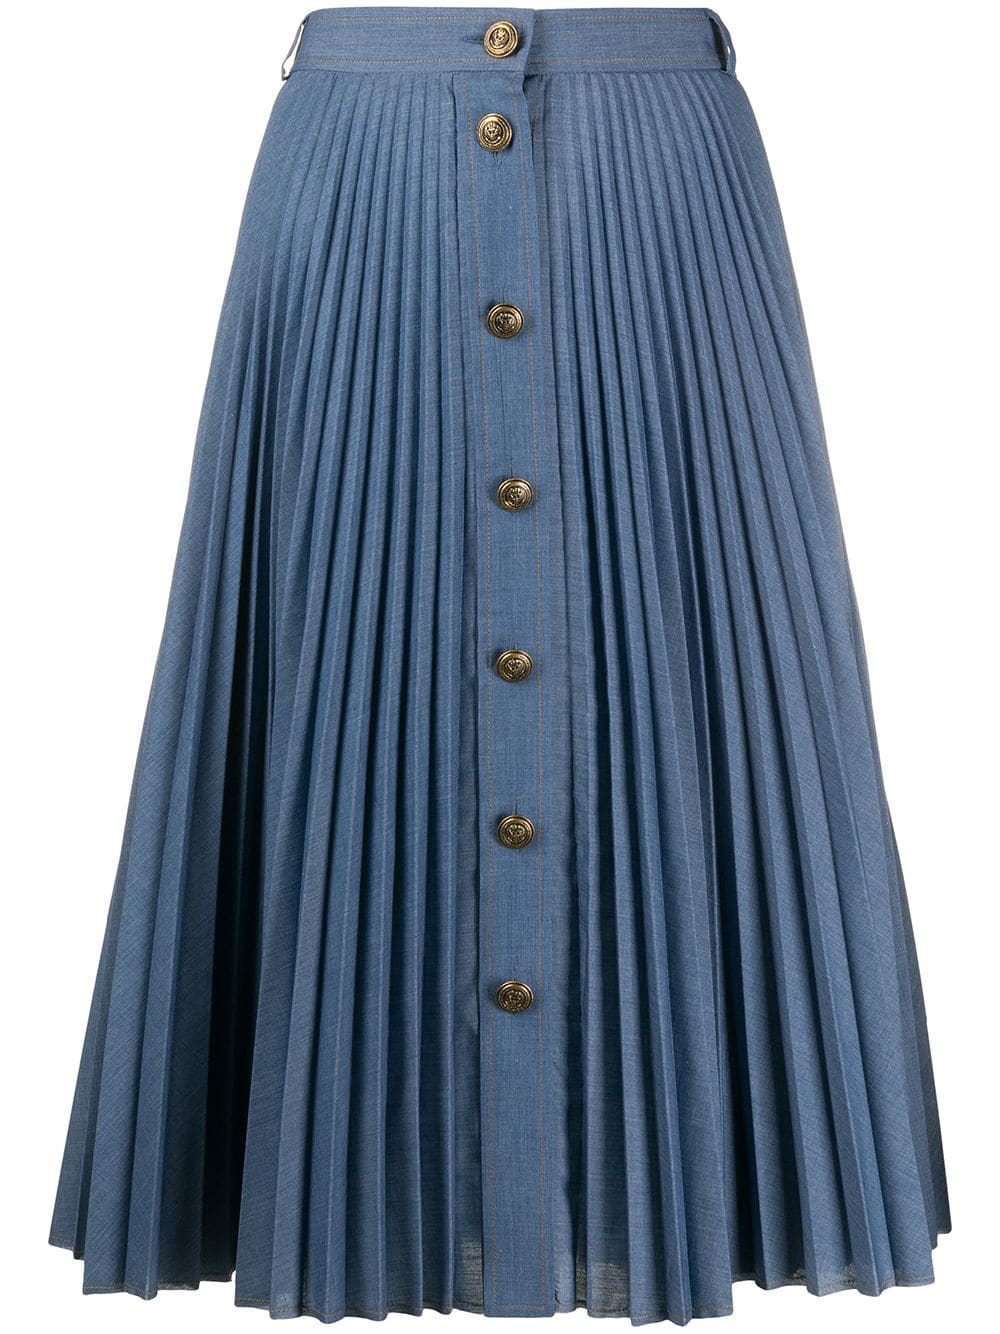 Pleated Skirt With Gold Buttons